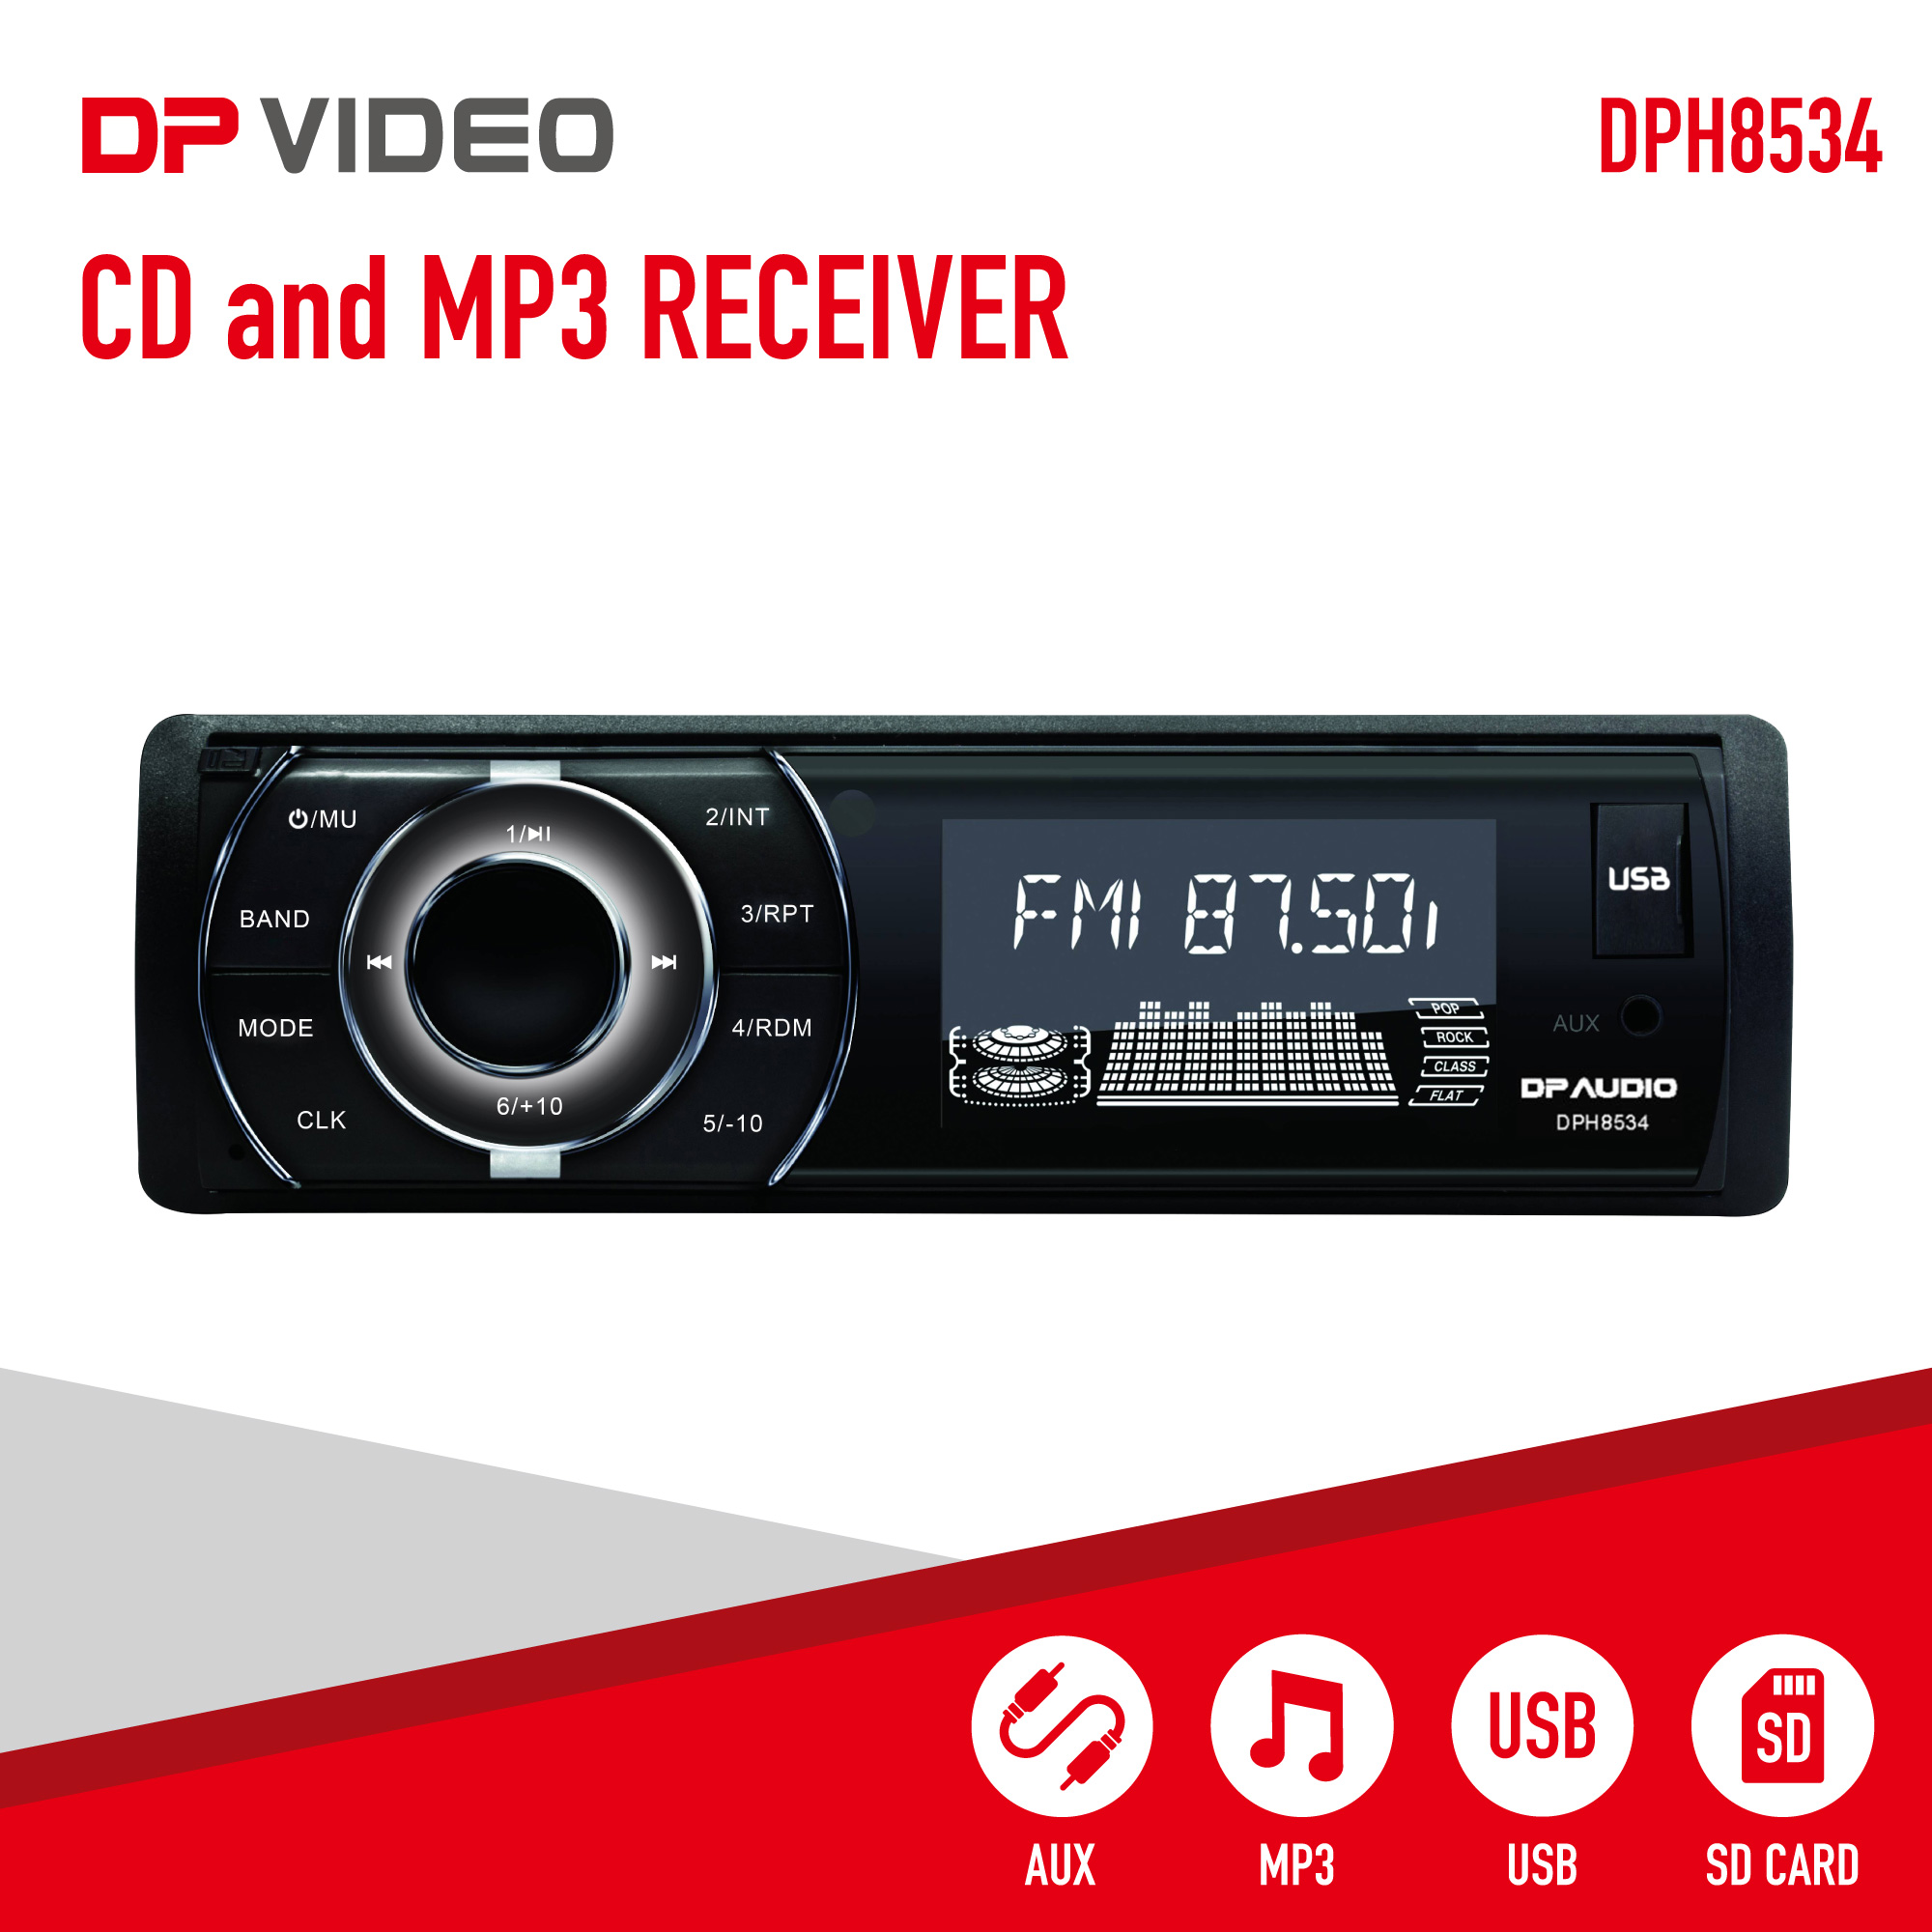 DP Audio Video DPH8534 Car Stereo Single Din CD and MP3 Receiver with AM/FM tuner